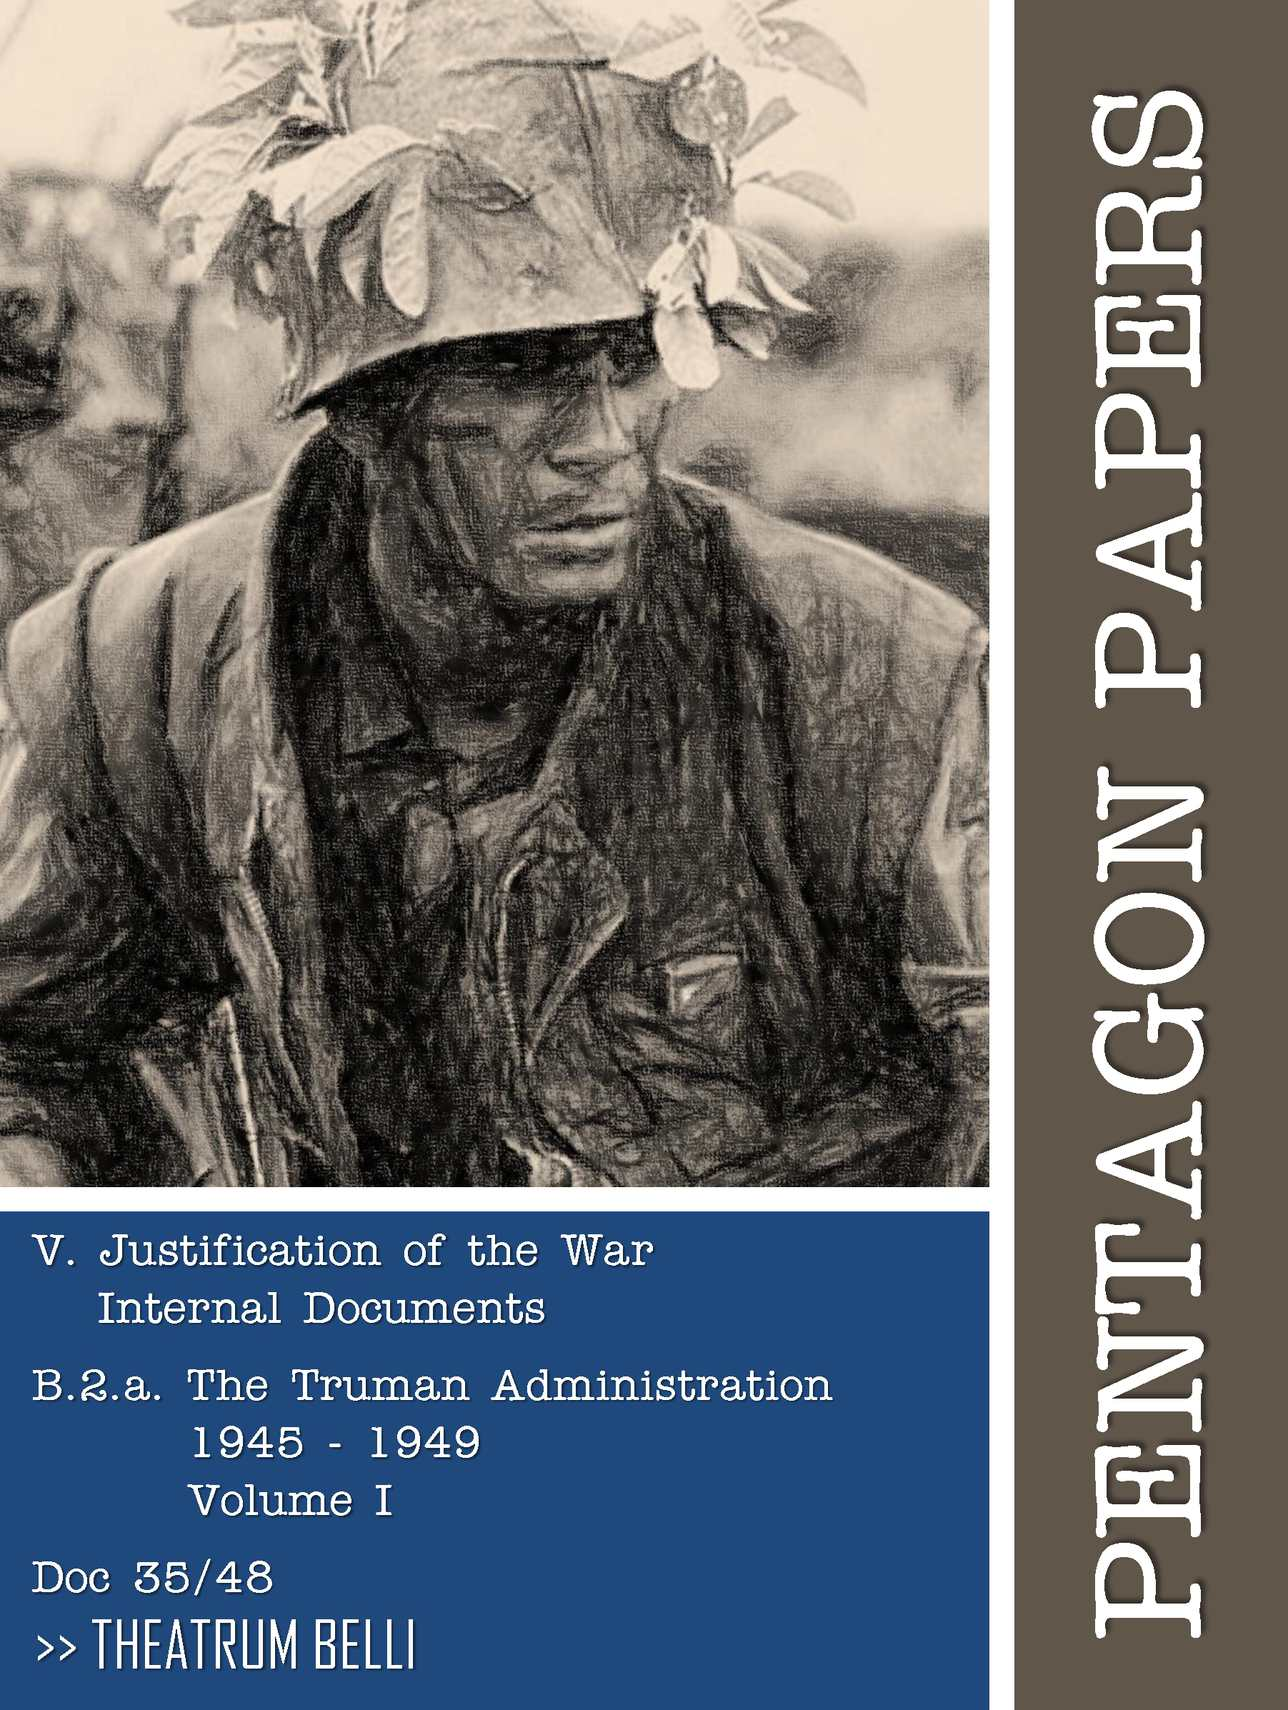 Calaméo - Pentagon Papers (35/48) : Justification of the War - Internal  Documents - The Truman Administration - Volume I : 1945-1949